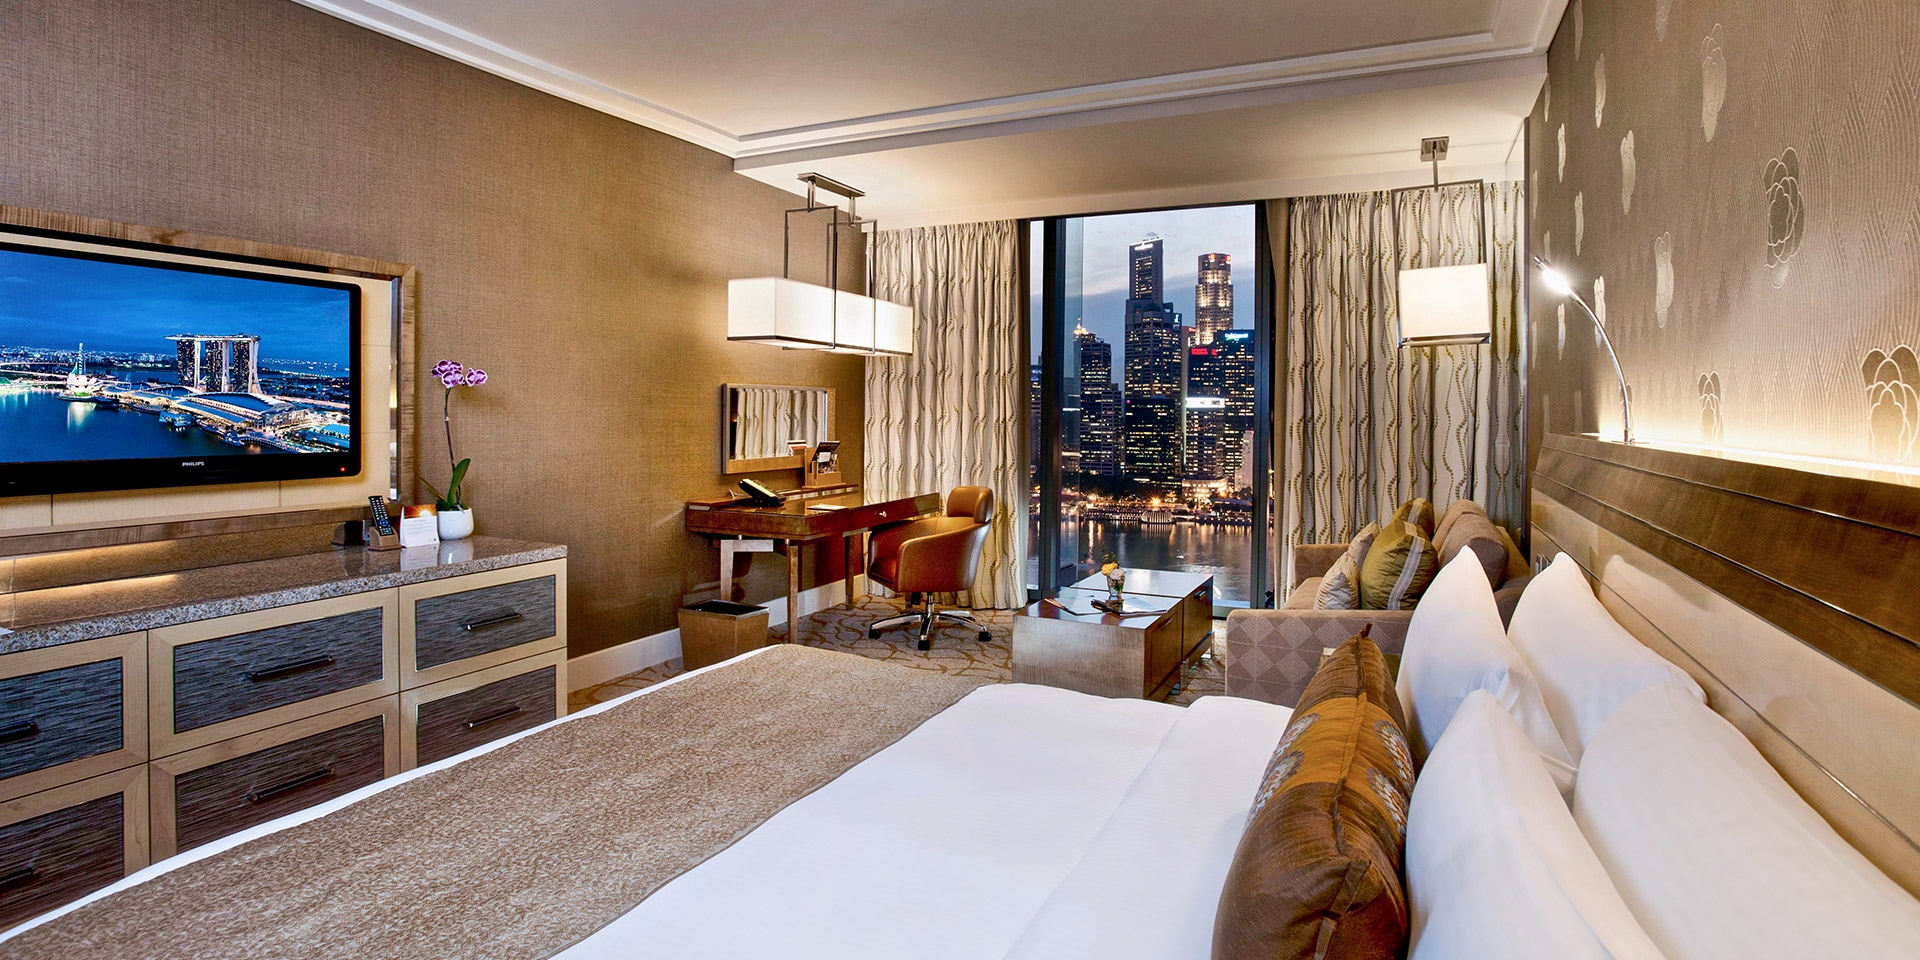 Deluxe Room In Marina Bay Sands Singapore Hotel